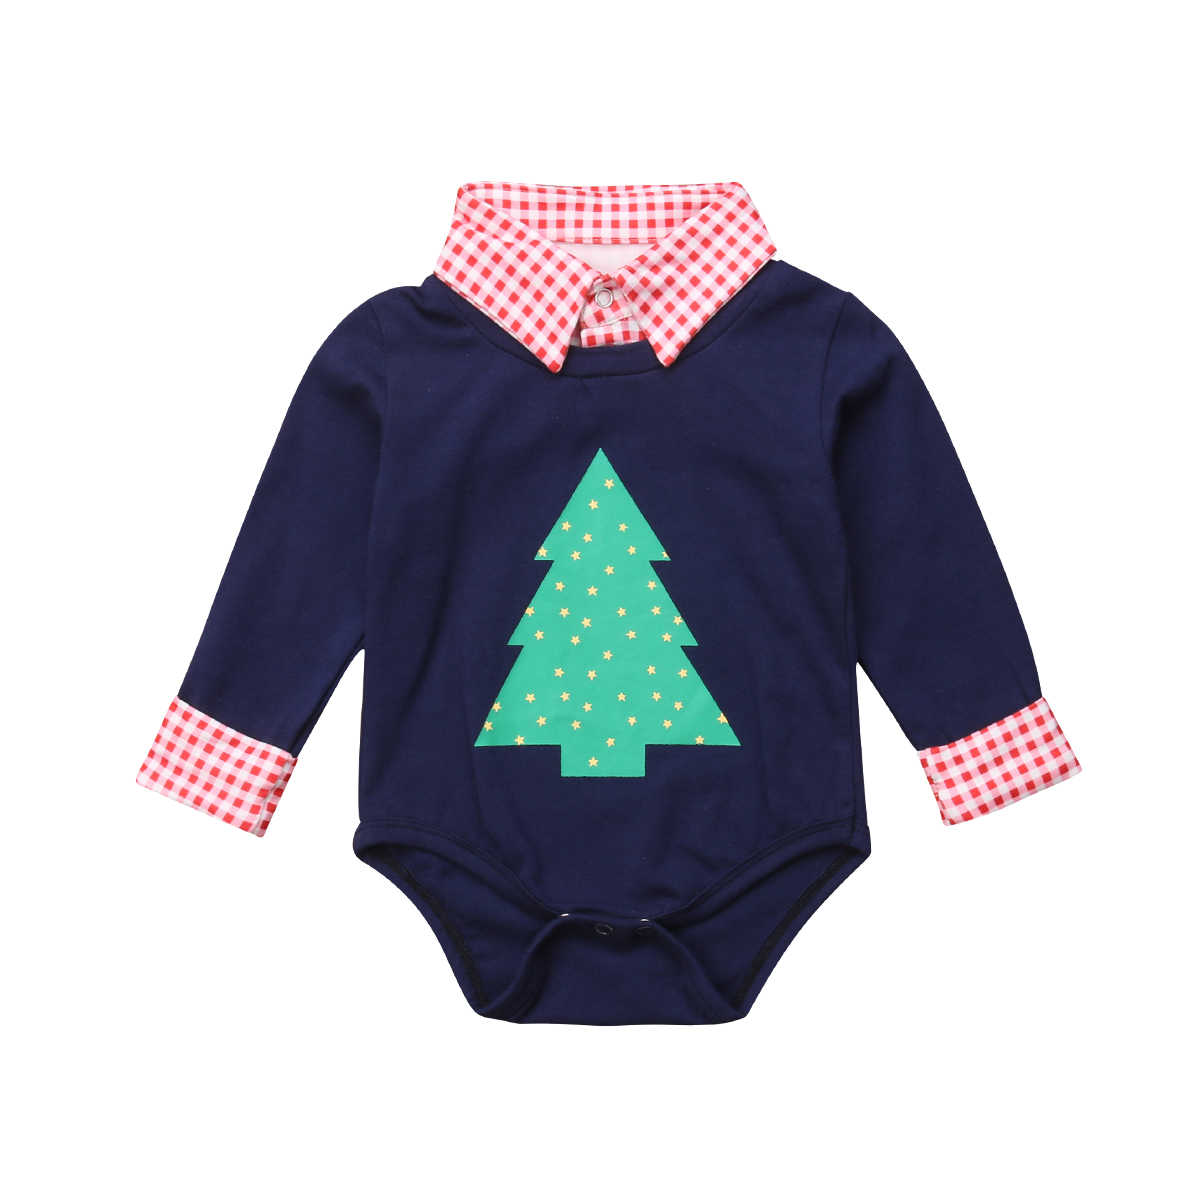 785f8cb1d802 Detail Feedback Questions about Navy Blue Newborn Baby Boy Fake two pieces  Long Sleeve Romper Christmas Tree Cotton Jumpsuit Fit 0 18M on  Aliexpress.com ...